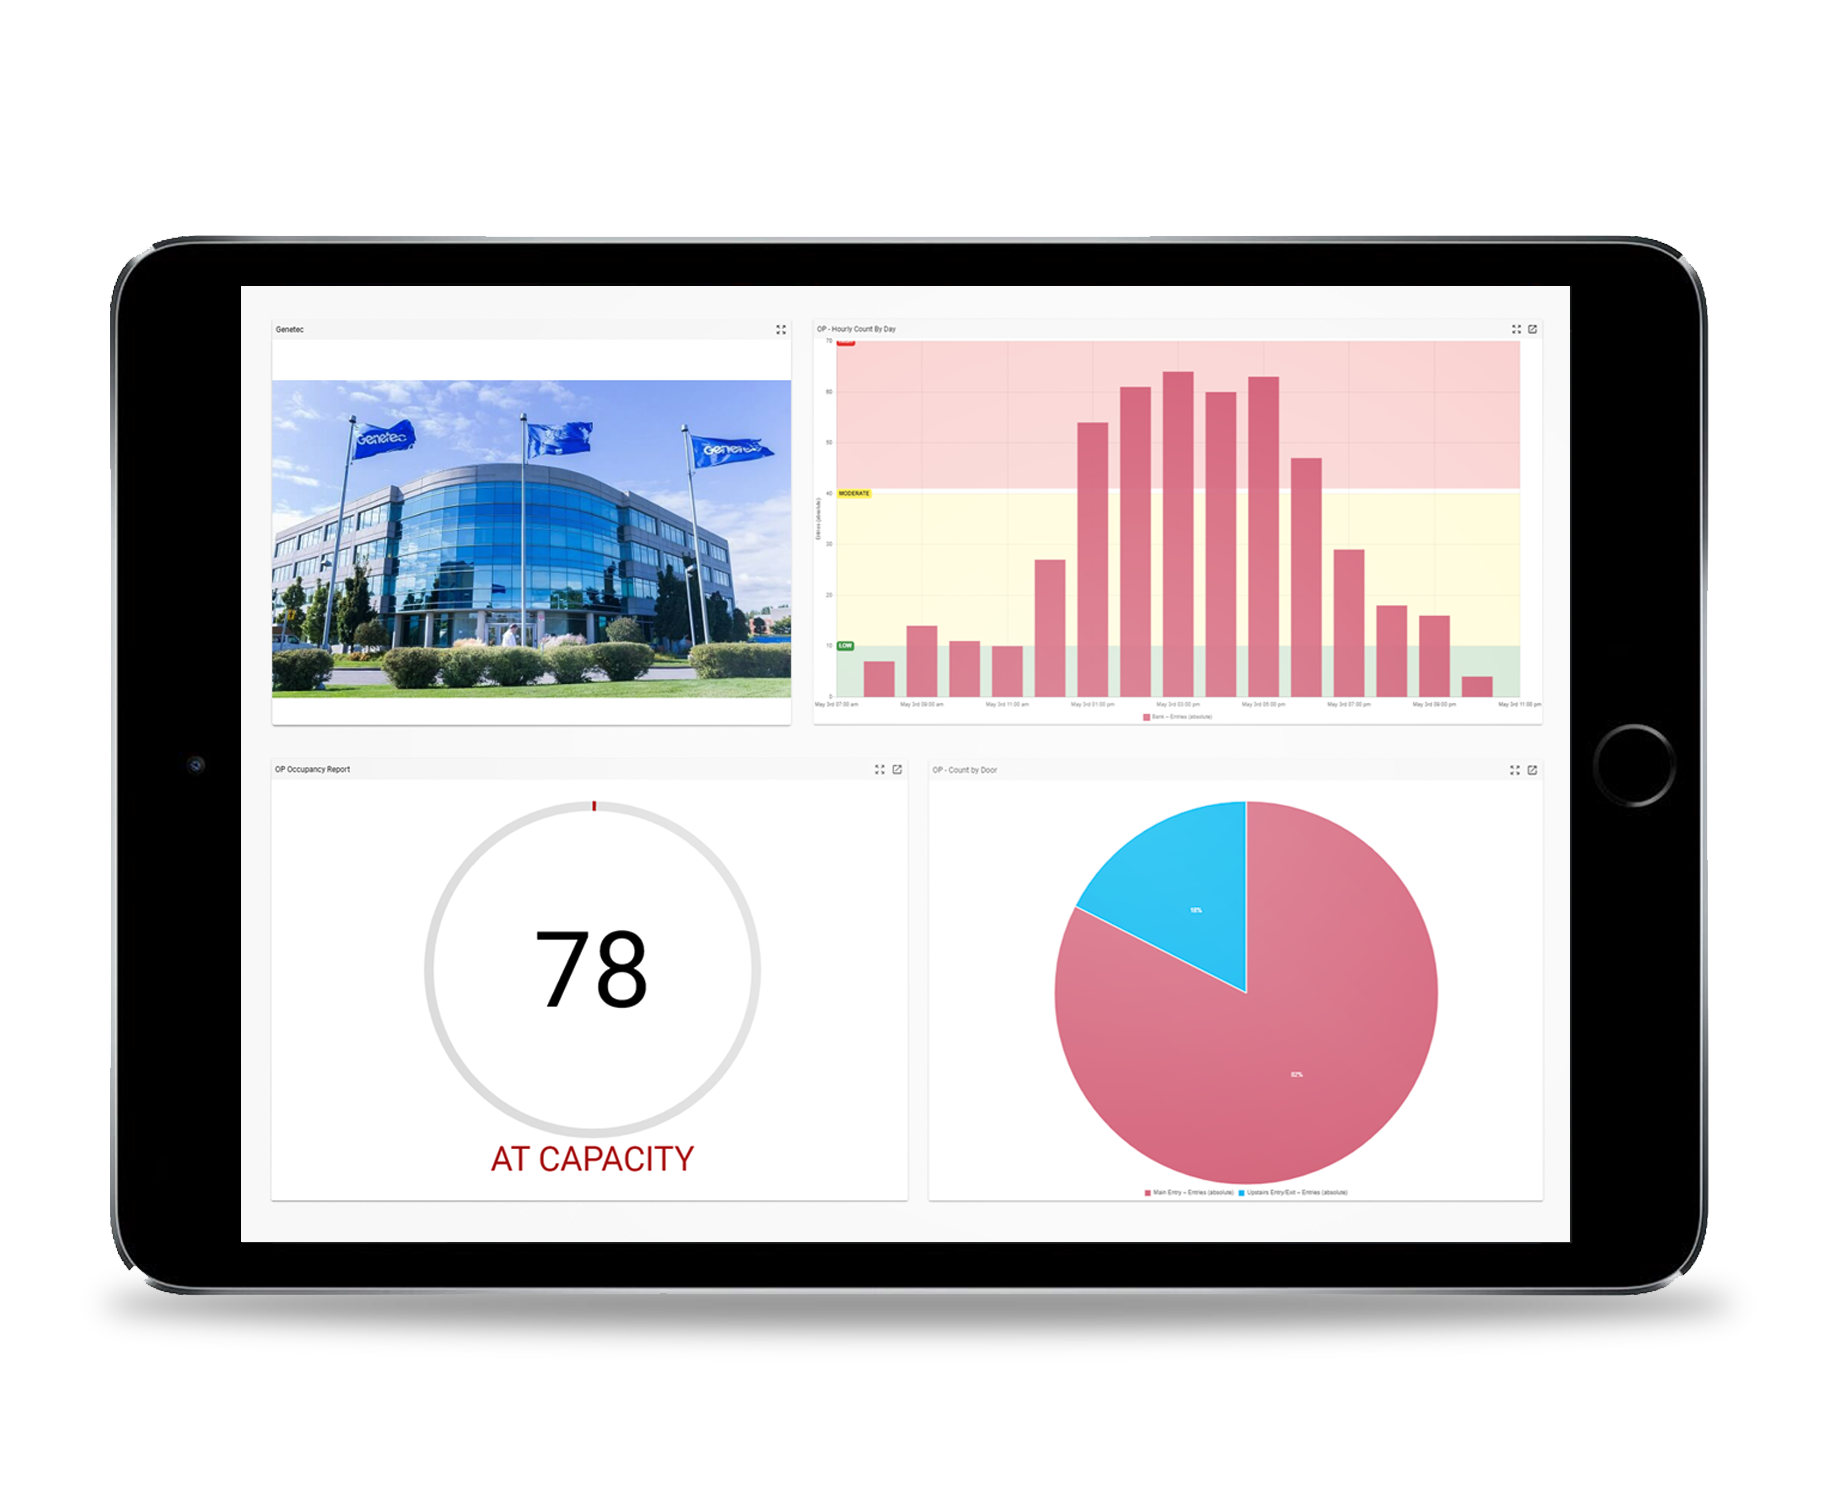 Genetec helps organizations monitor occupancy levels and ensure compliance with physical distancing regulations